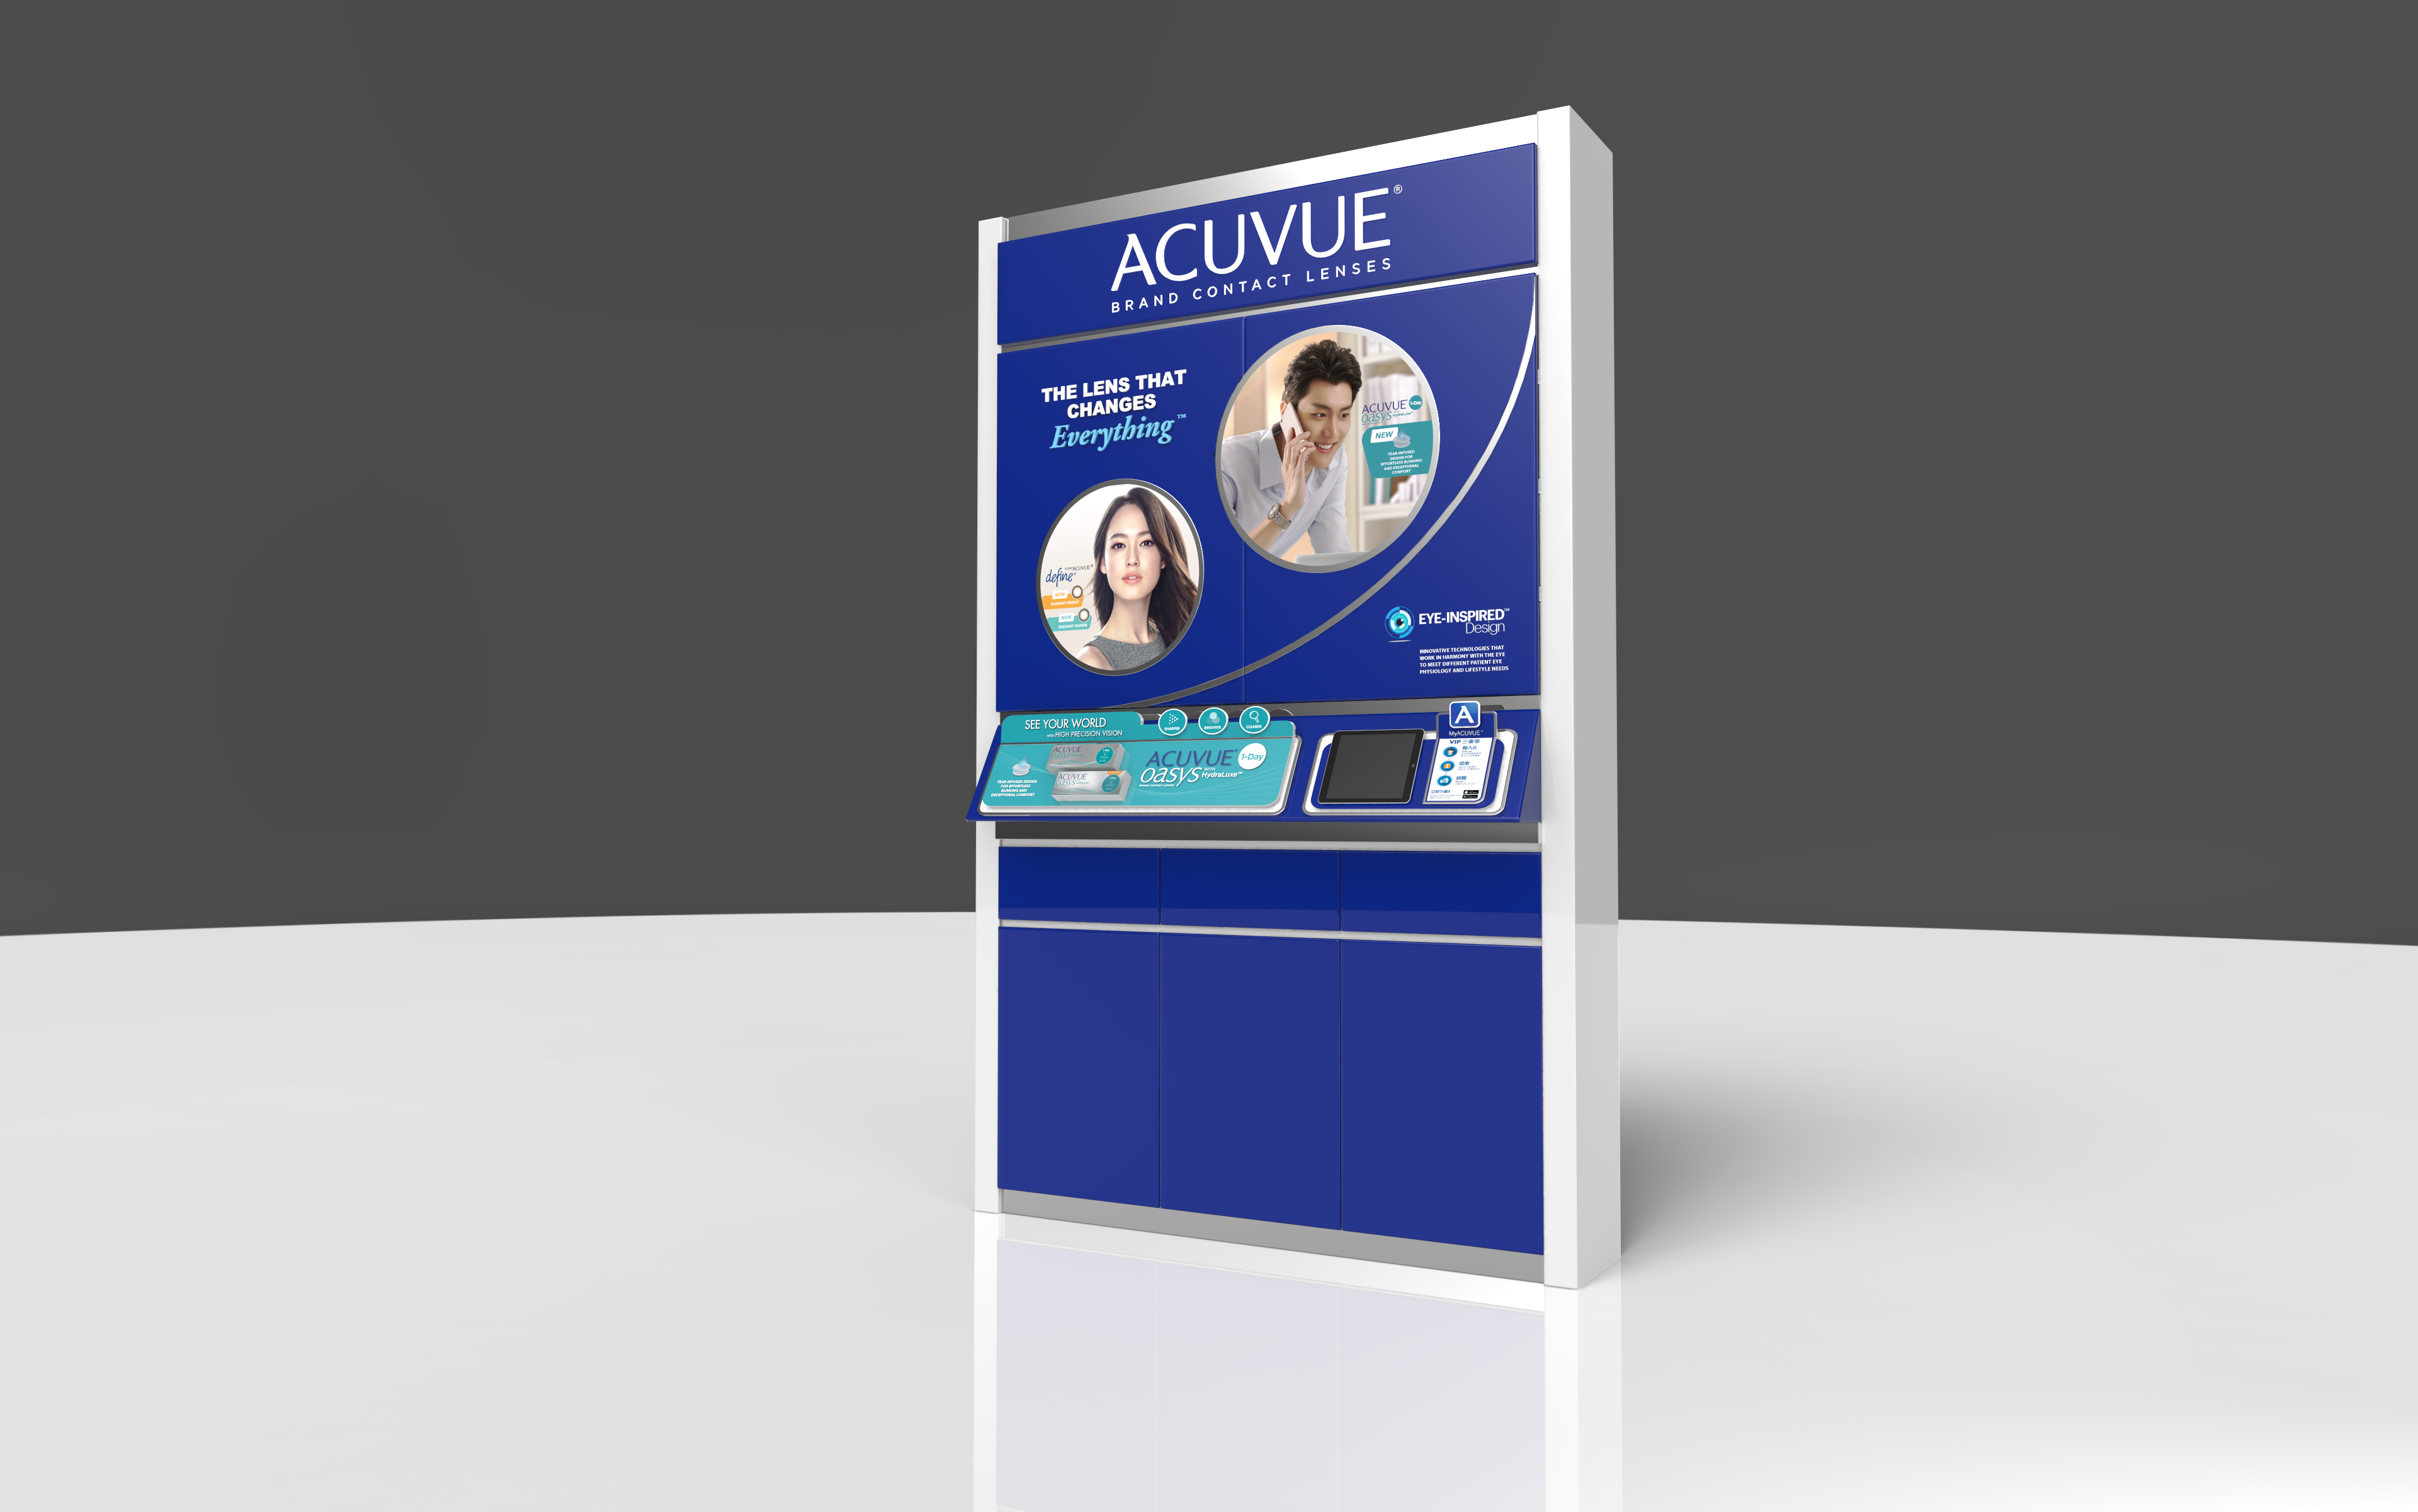 <p>We all know that retail space is a premium. With the rising cost of space, every inch is valuable. So when we were approached to produce a better storage solution for ACUVUE, we took this opportunity to not just build a cabinet but incorporate a better brand and marketing solution. […]</p>